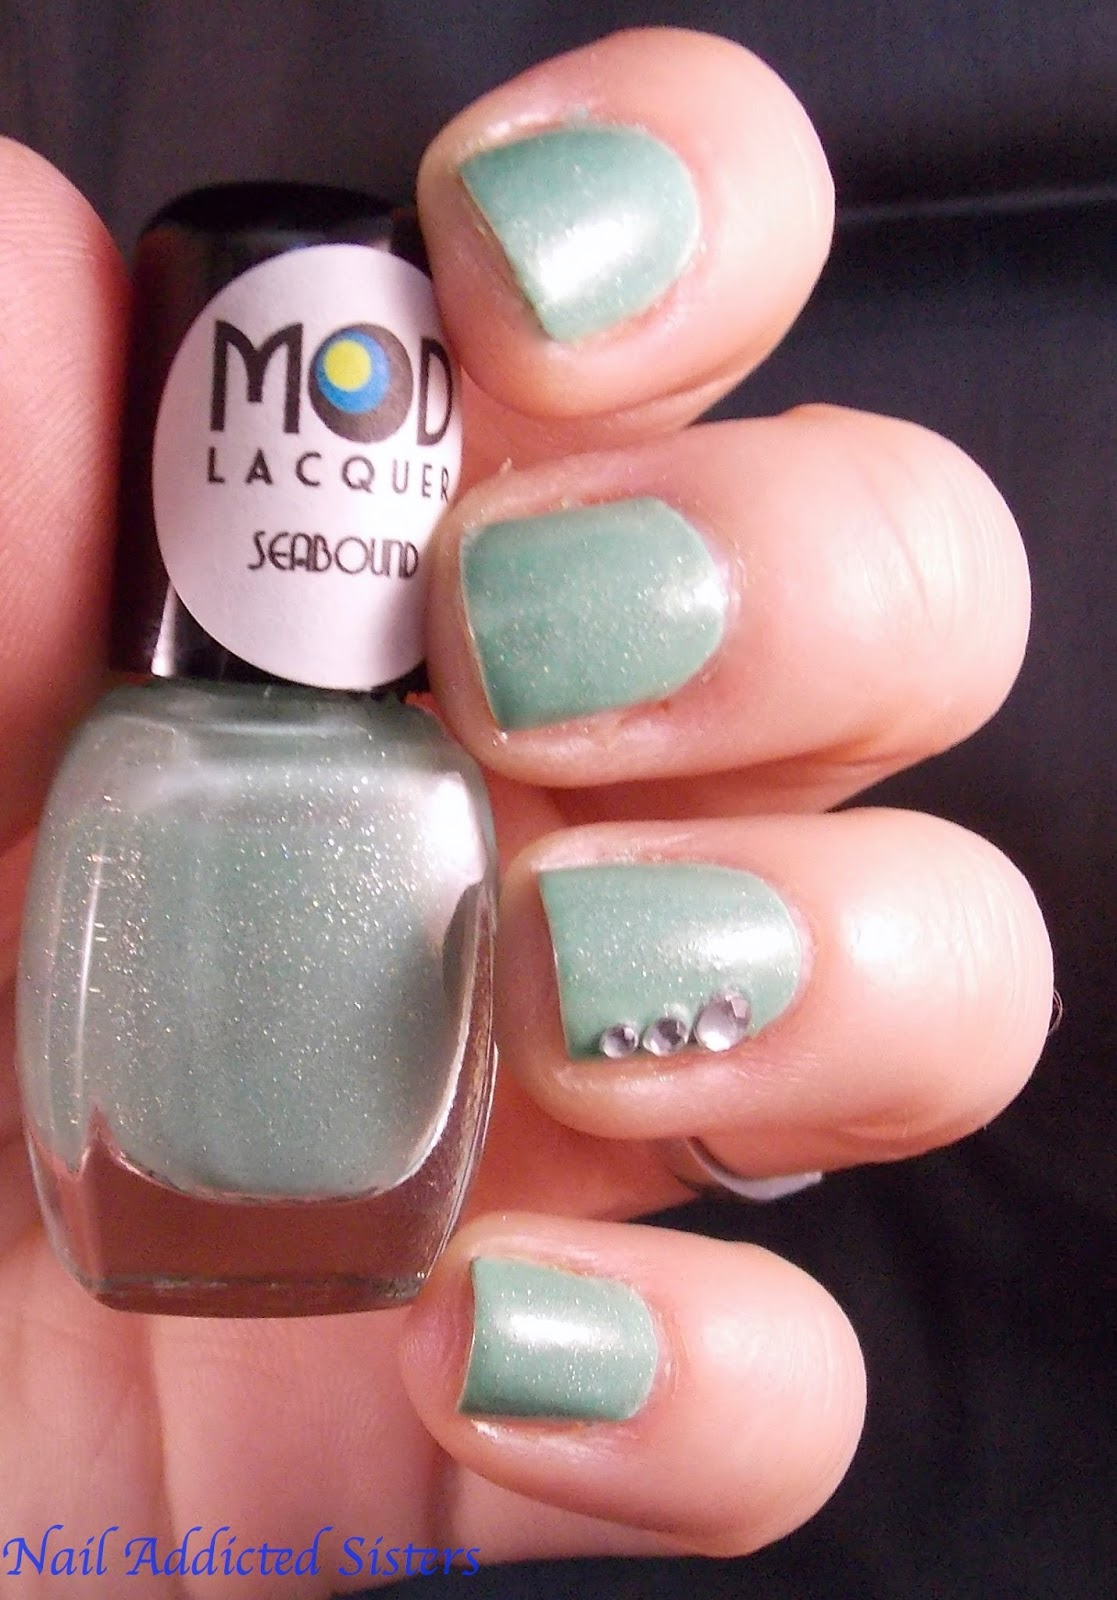 Nail Addicted Sisters: MOD Lacquer Madness Part 1